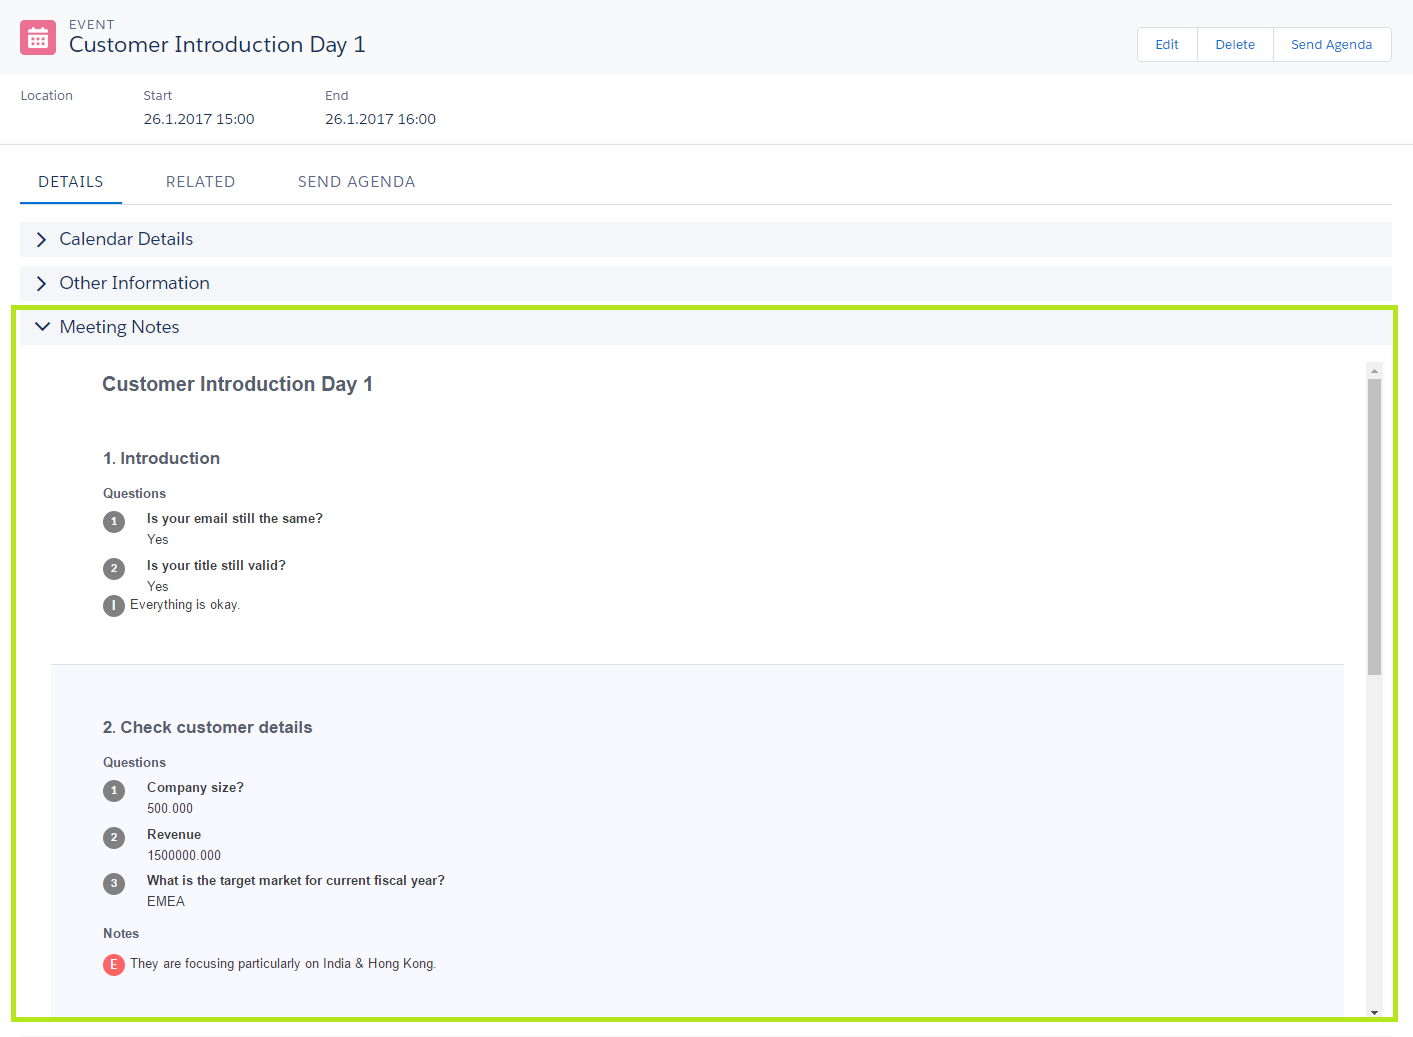 View-meeting-notes-events-calendar-salesforce.png